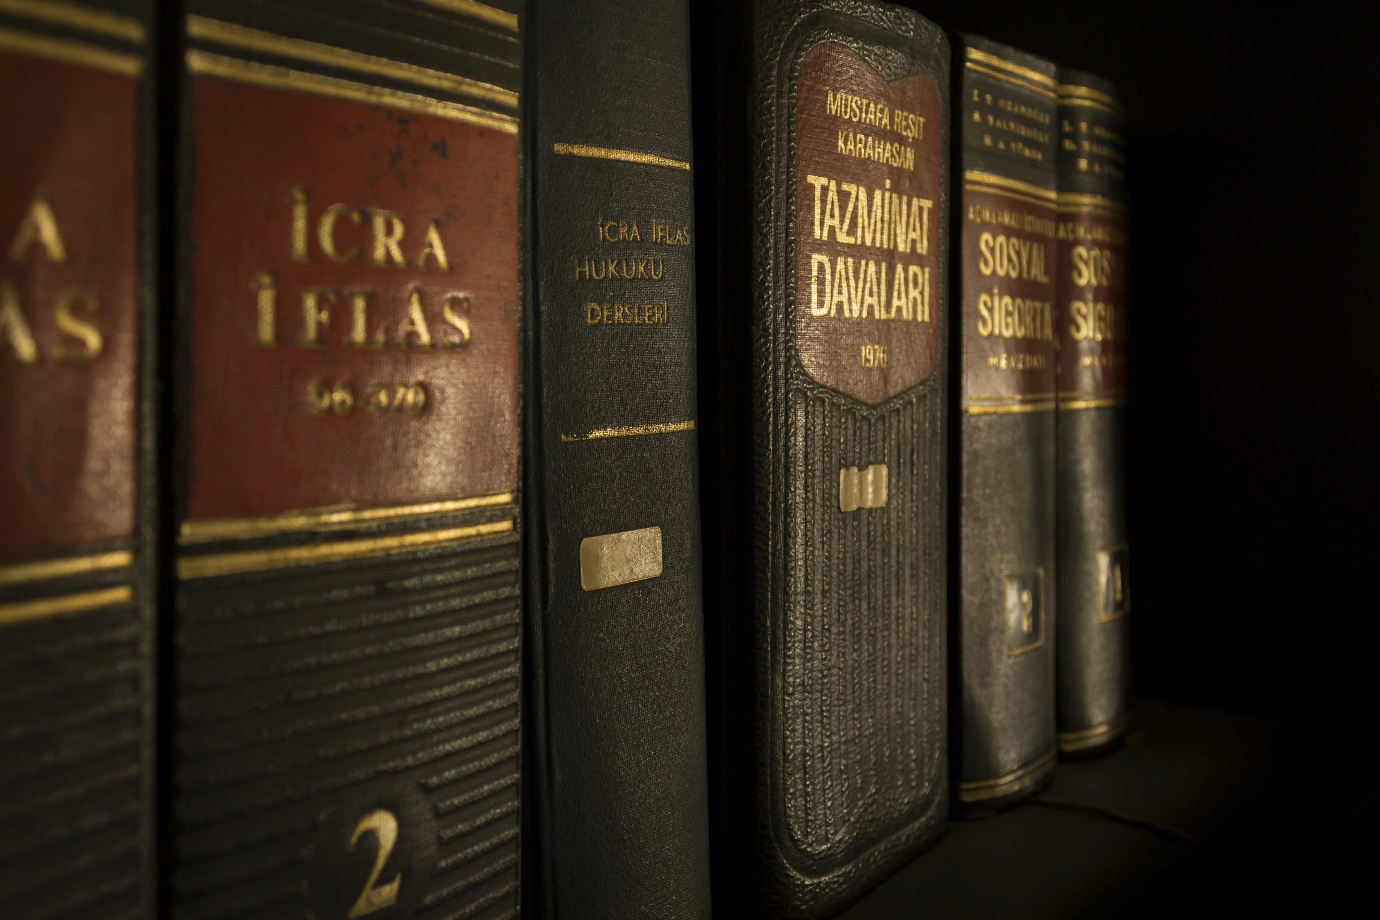 Bookshelf Containing Old Copies Of Legal Literature